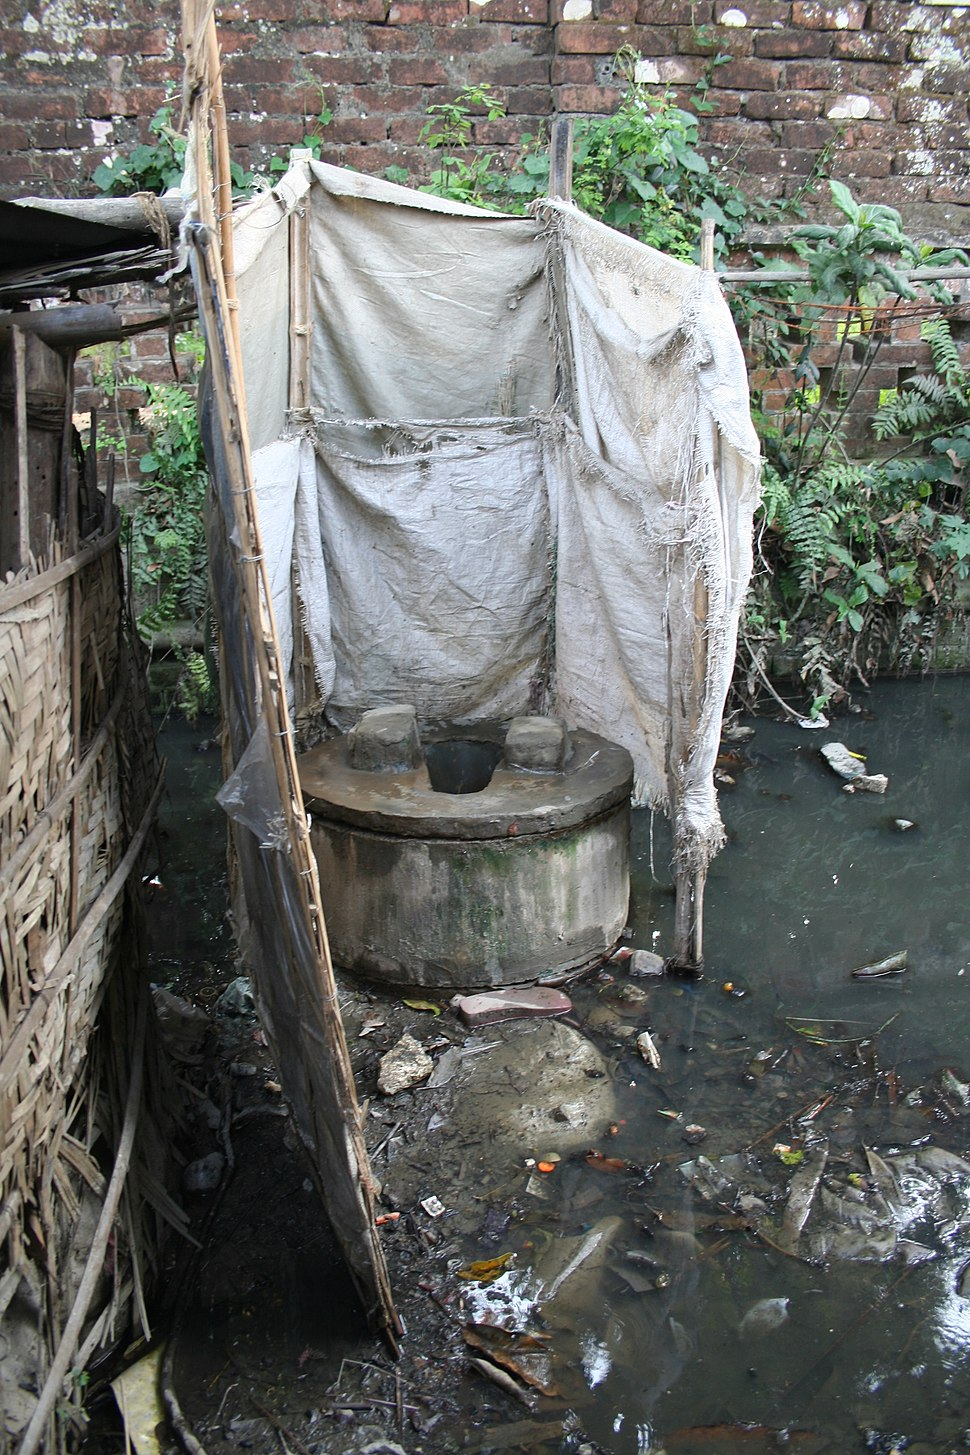 Ring-slab latrine in Kalibari community in Mymensingh, Bangladesh